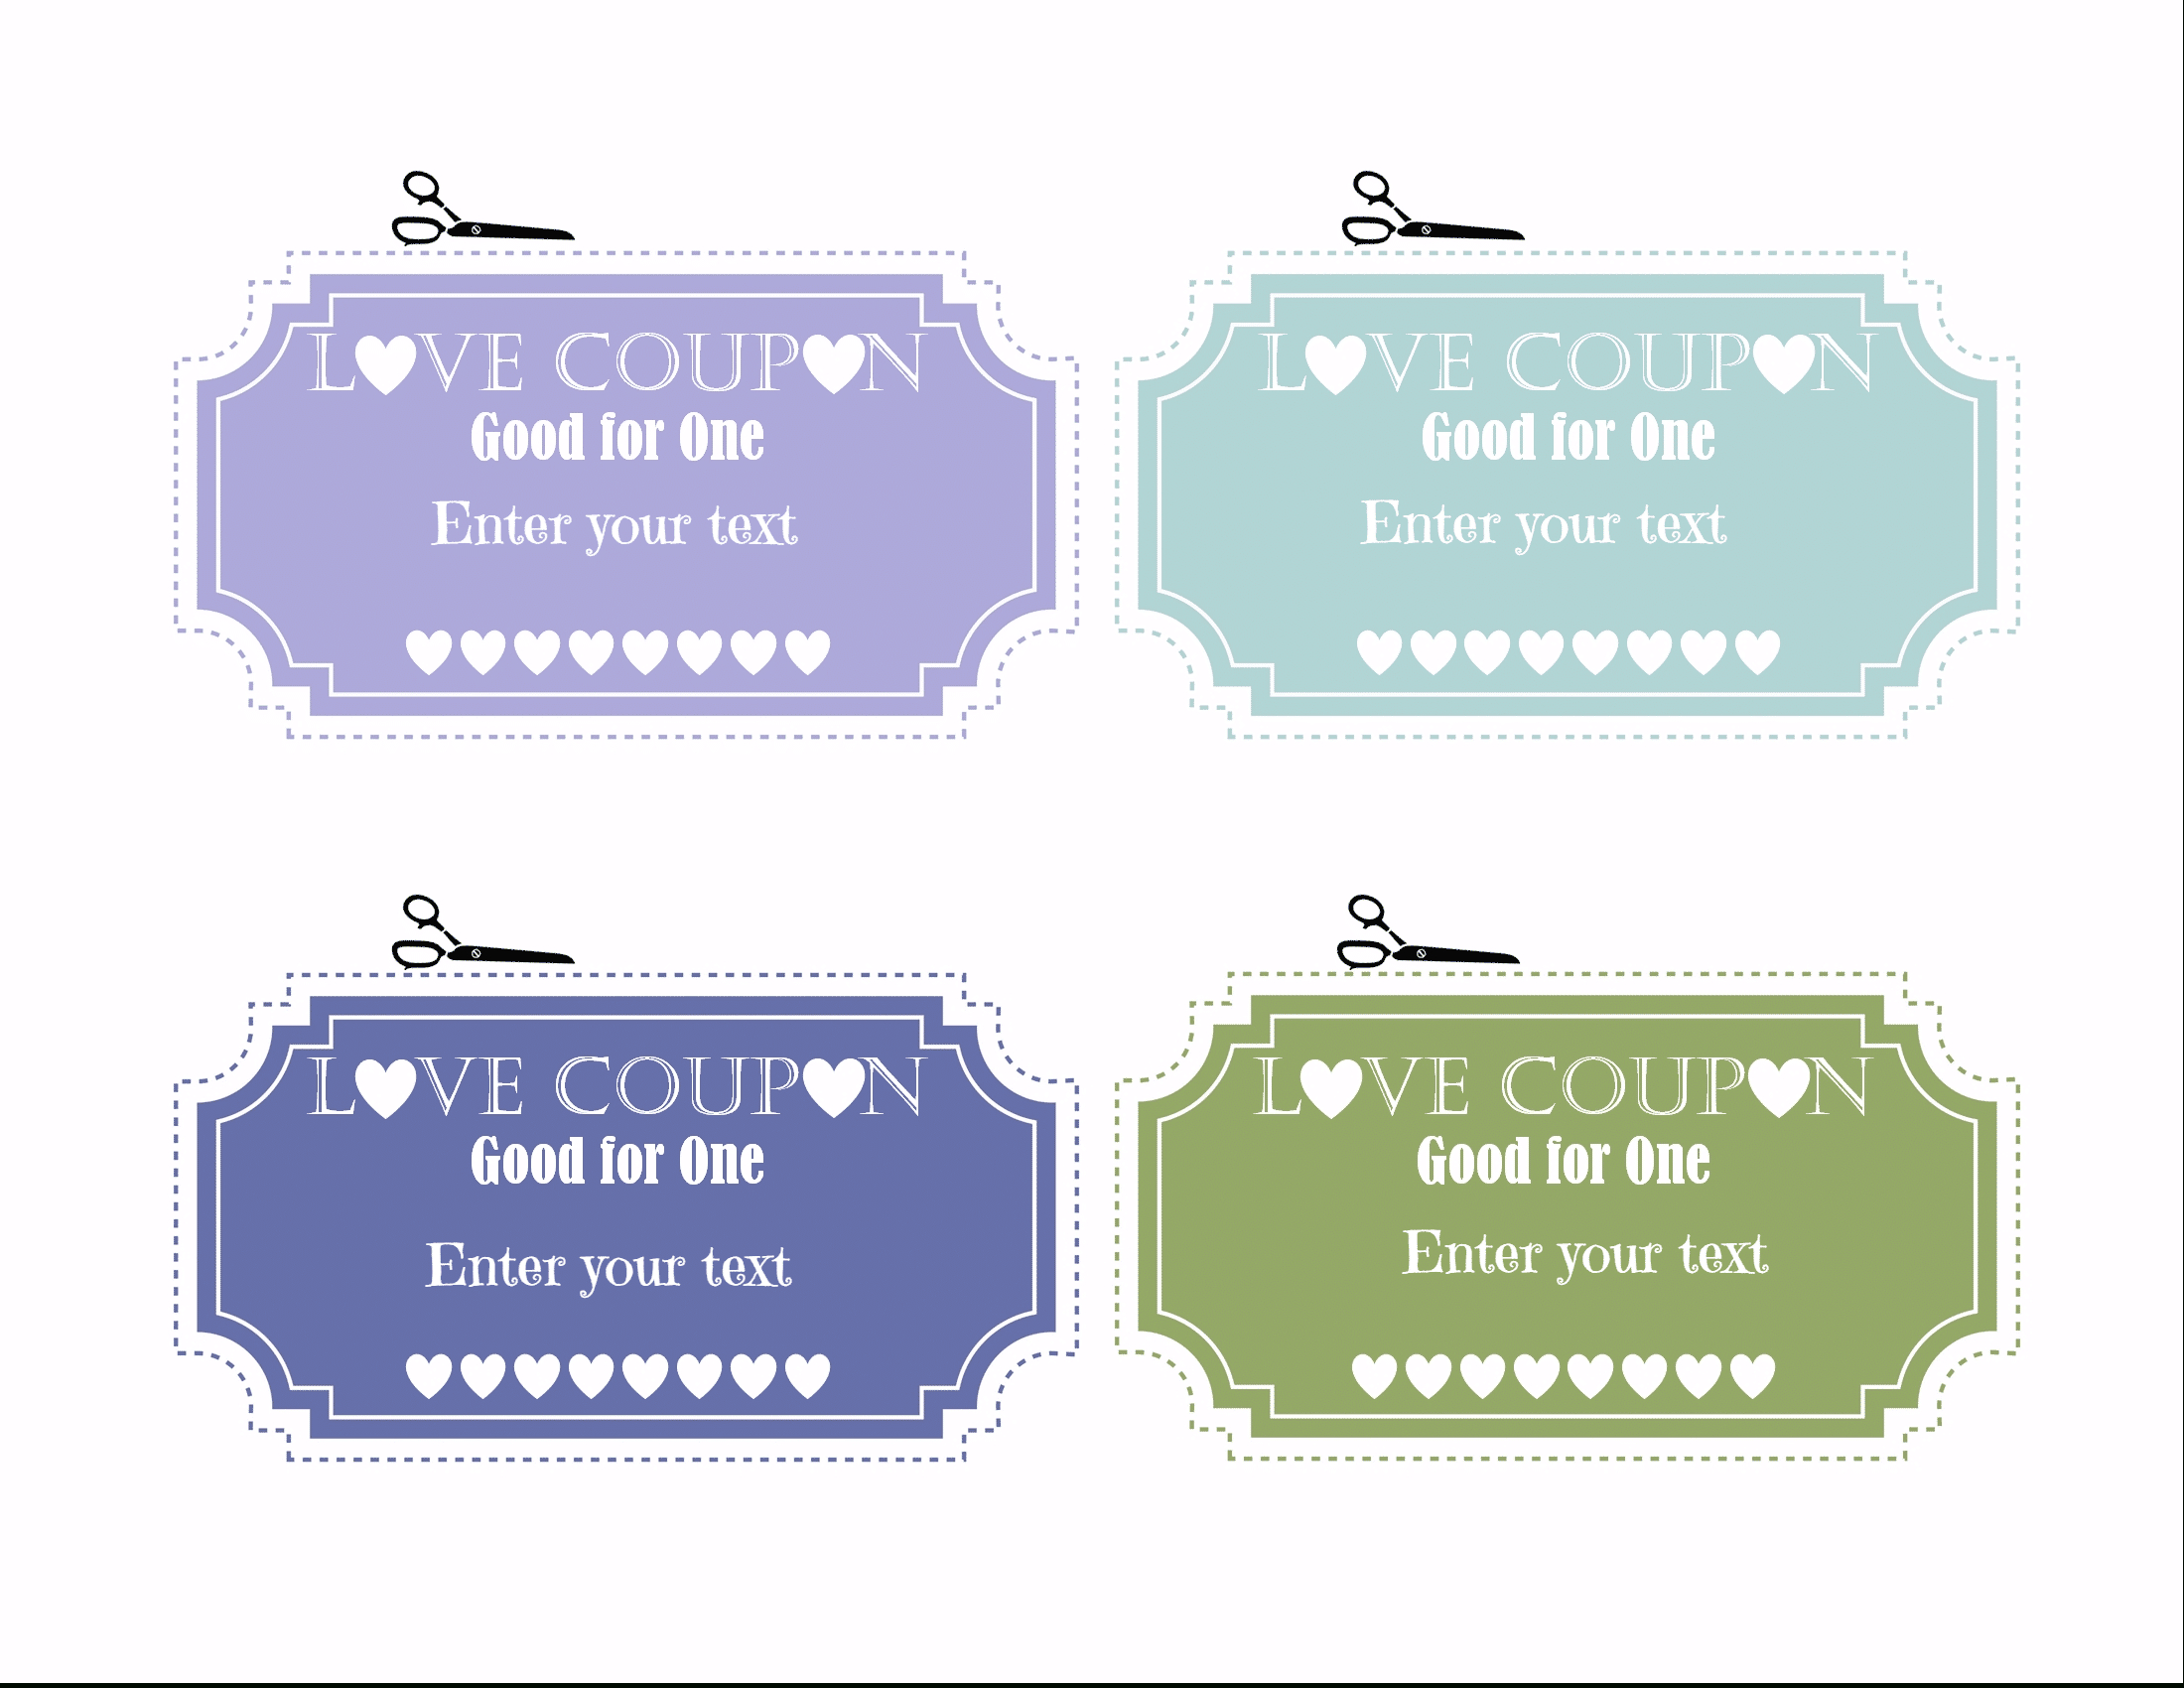 Free Editable Love Coupons For Him Or Her - Free Printable Coupons For Husband